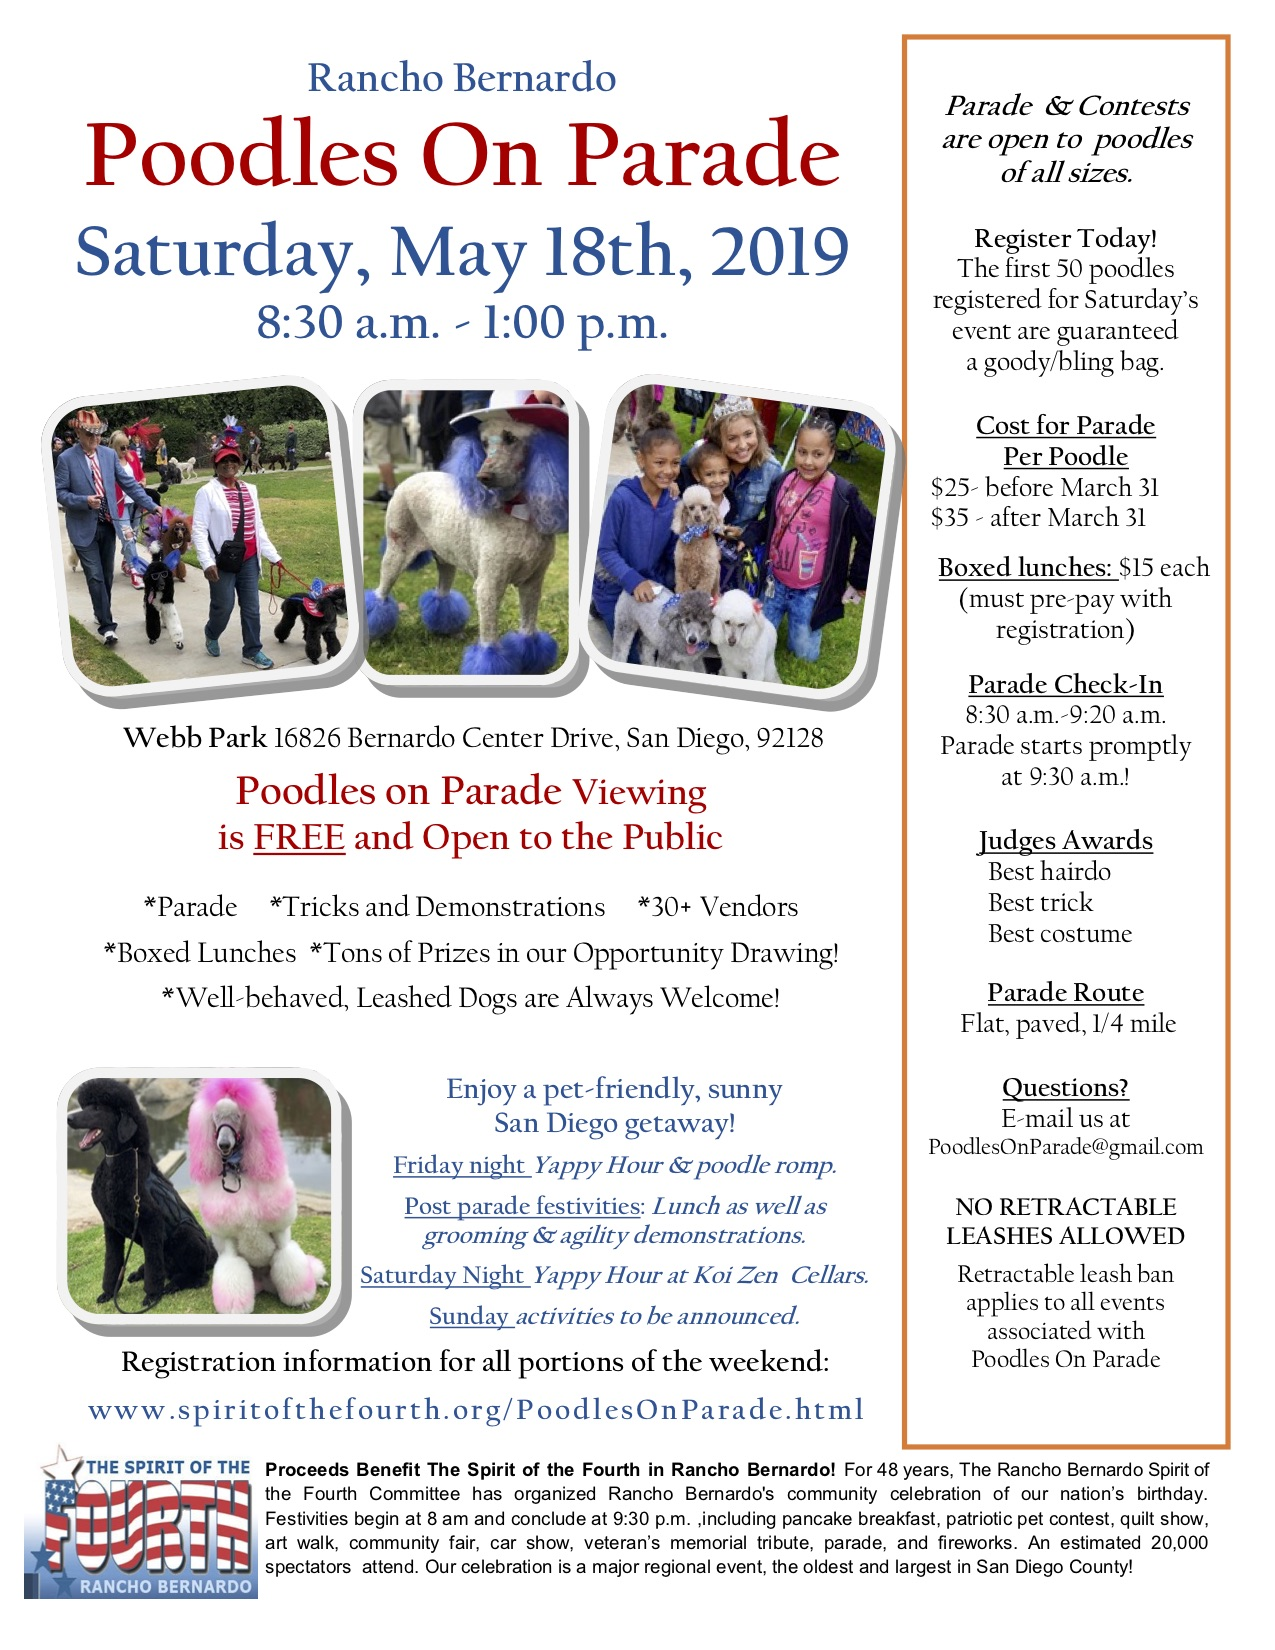 Poodles On Parade Flyer - 2019